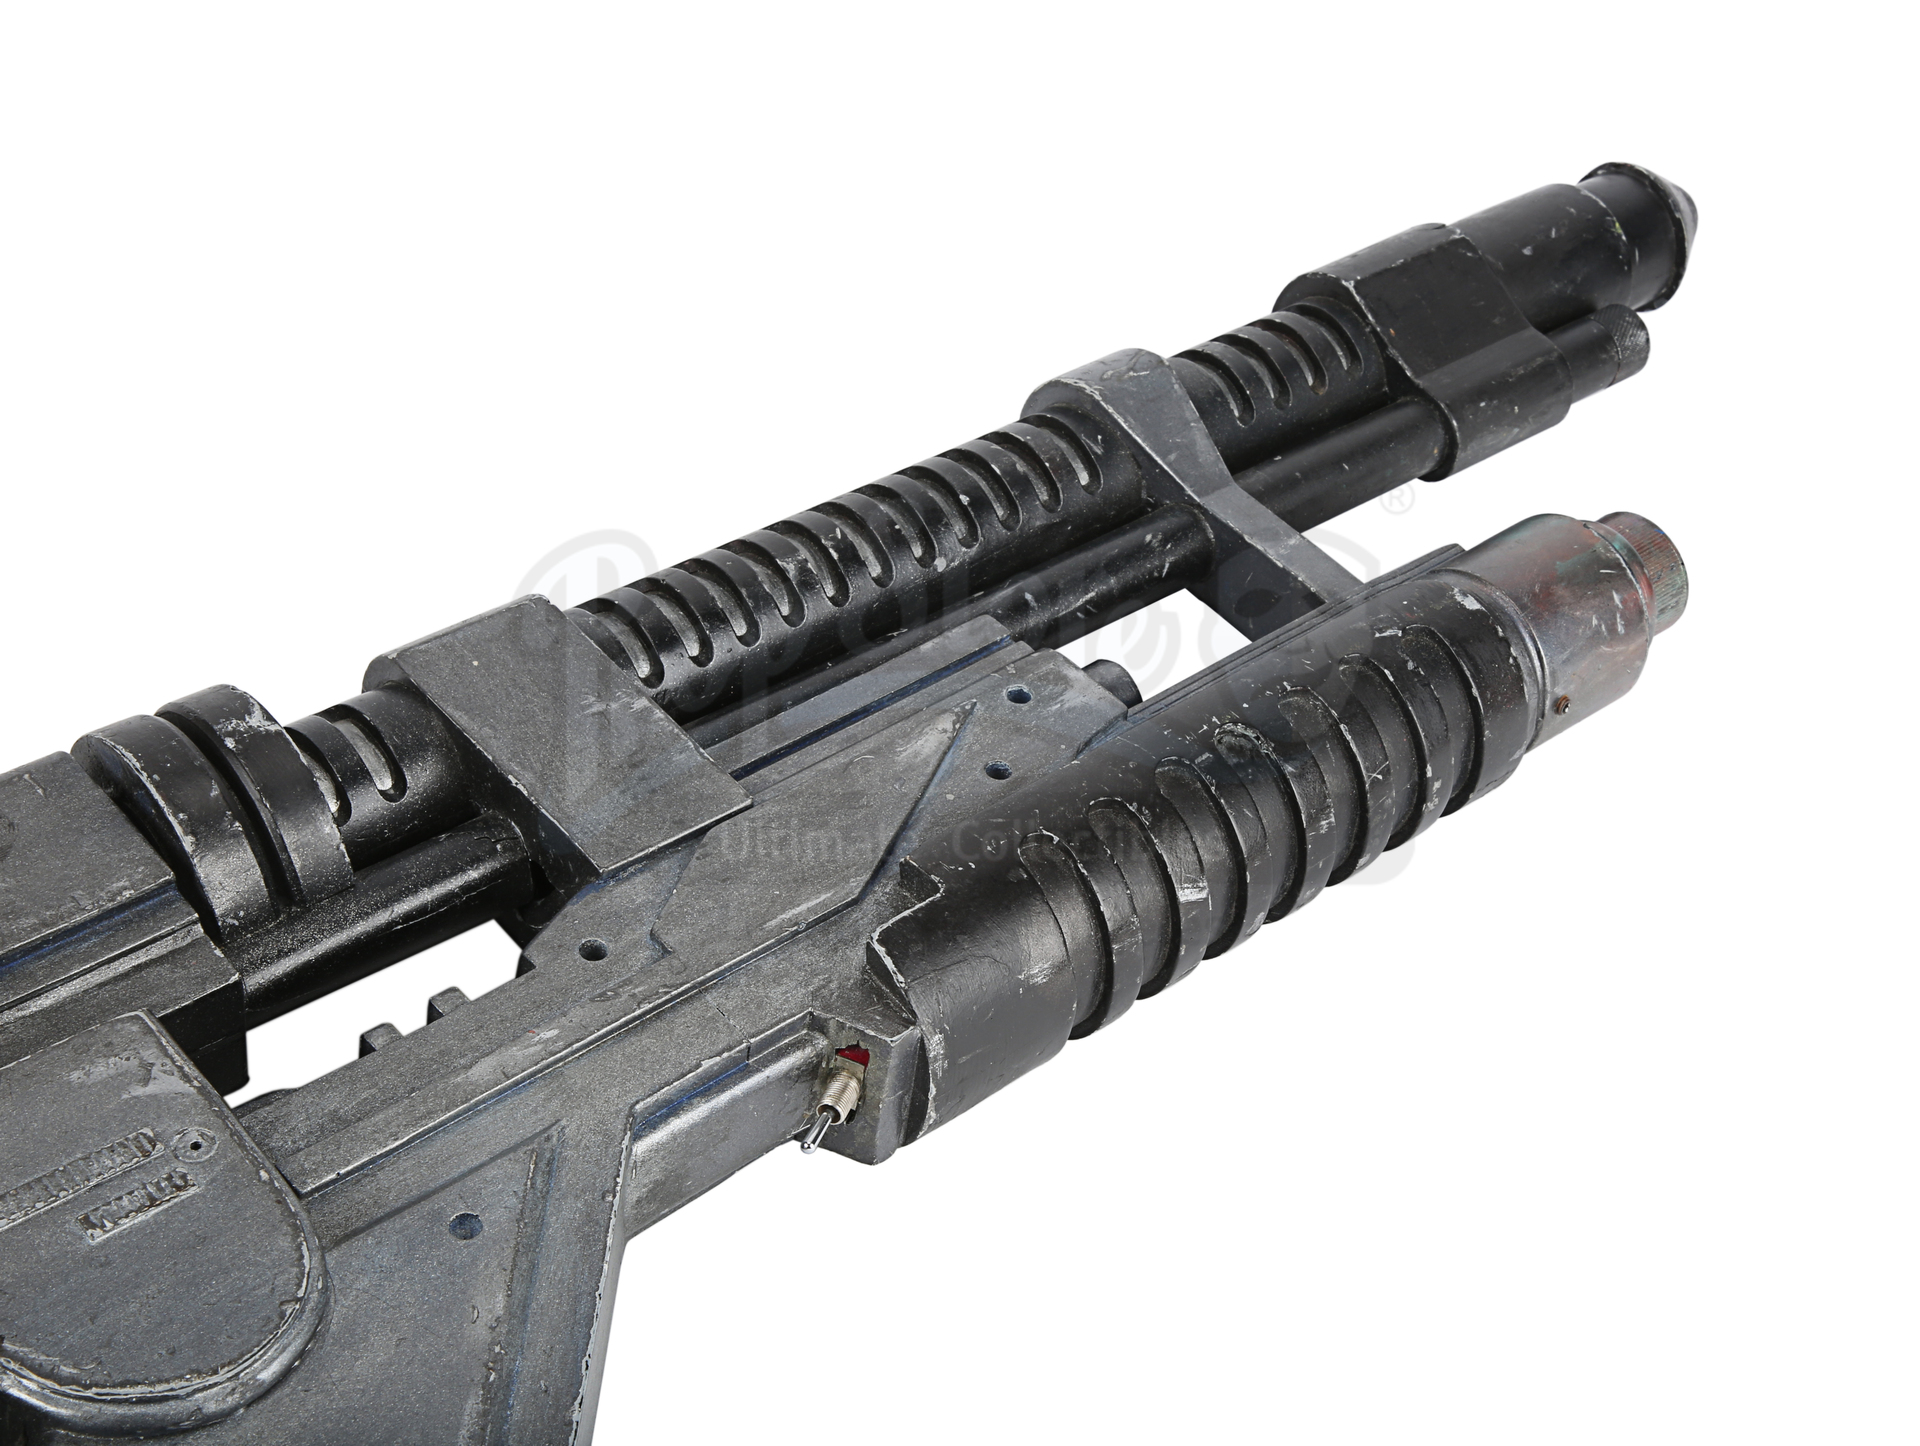 ALIEN RESURRECTION (1997) - Light-Up AR-2 Rifle - Image 8 of 19